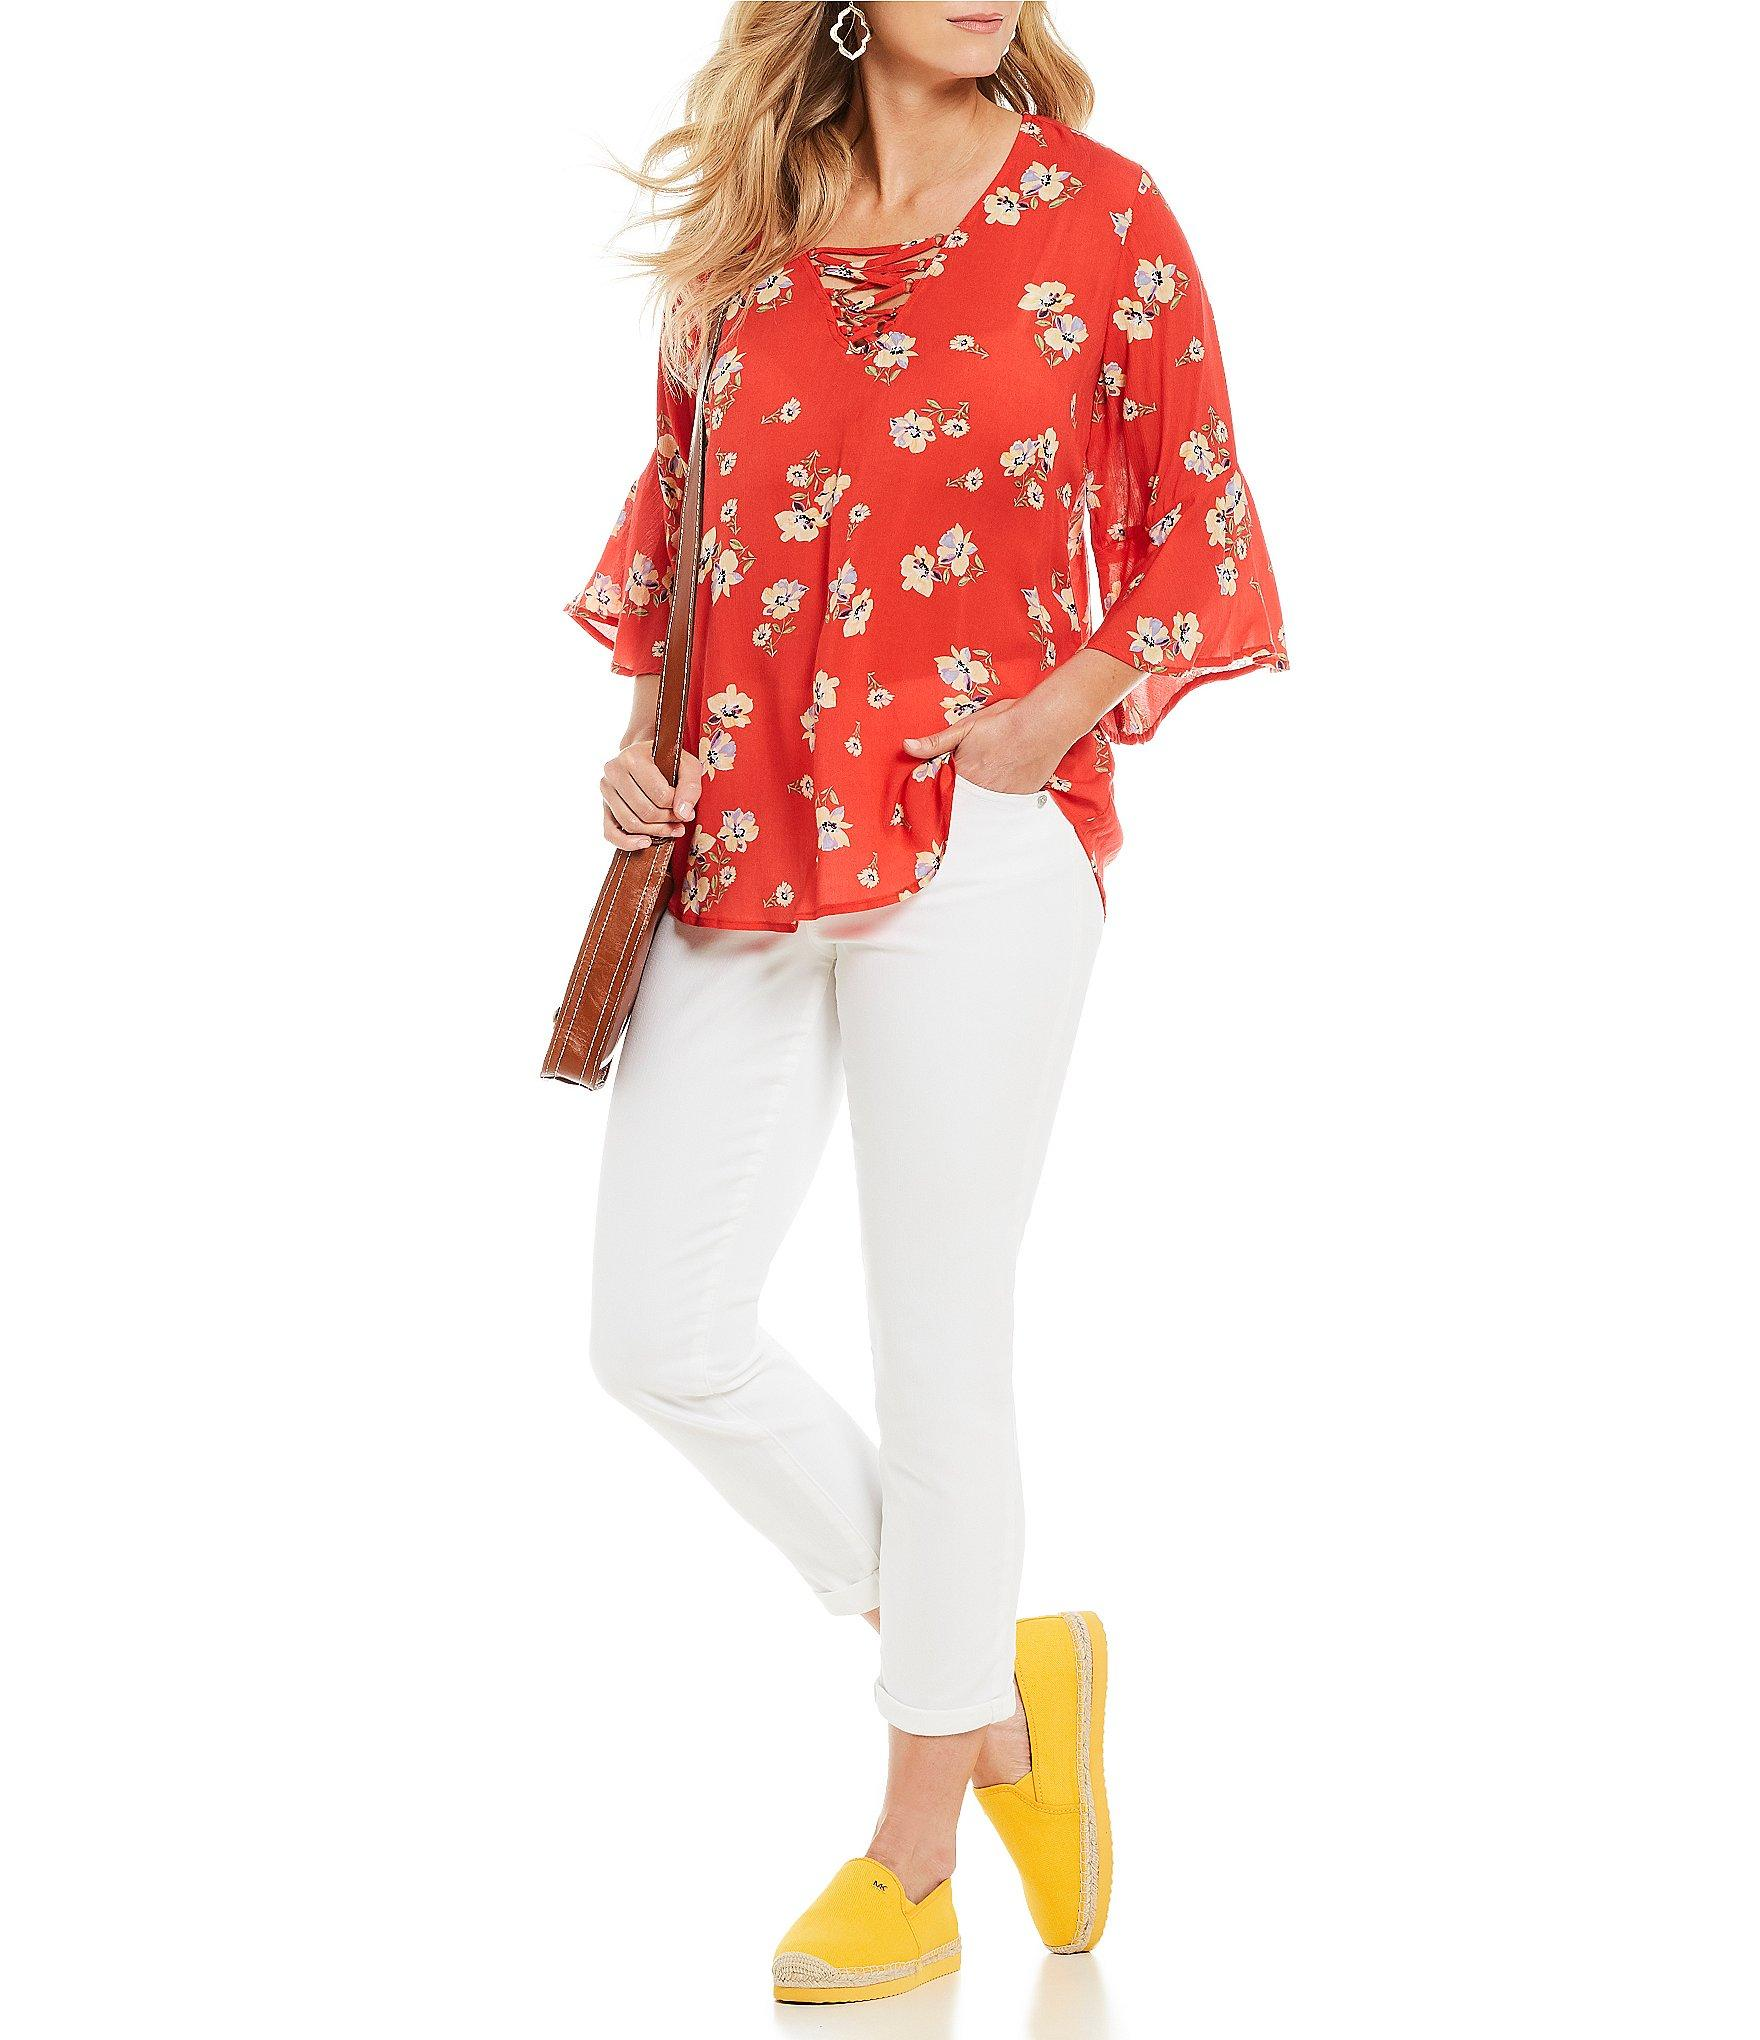 0c4dce1fc91 Democracy - Red Lace-up V-neck Poppy Print High-low Hem Top. View fullscreen